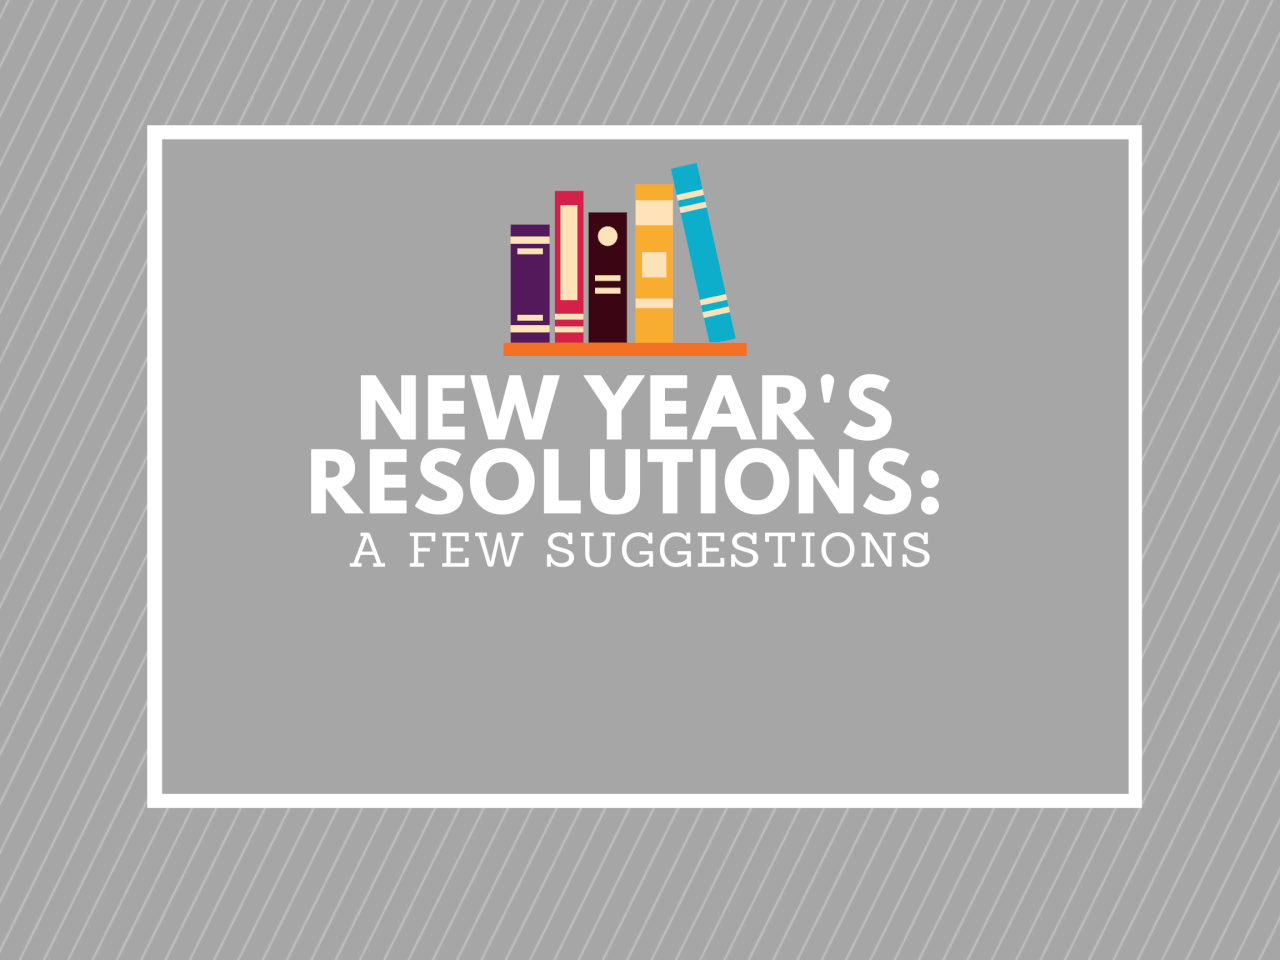 NEW YEAR'S RESOLUTIONS: A FEW SUGGESTIONS